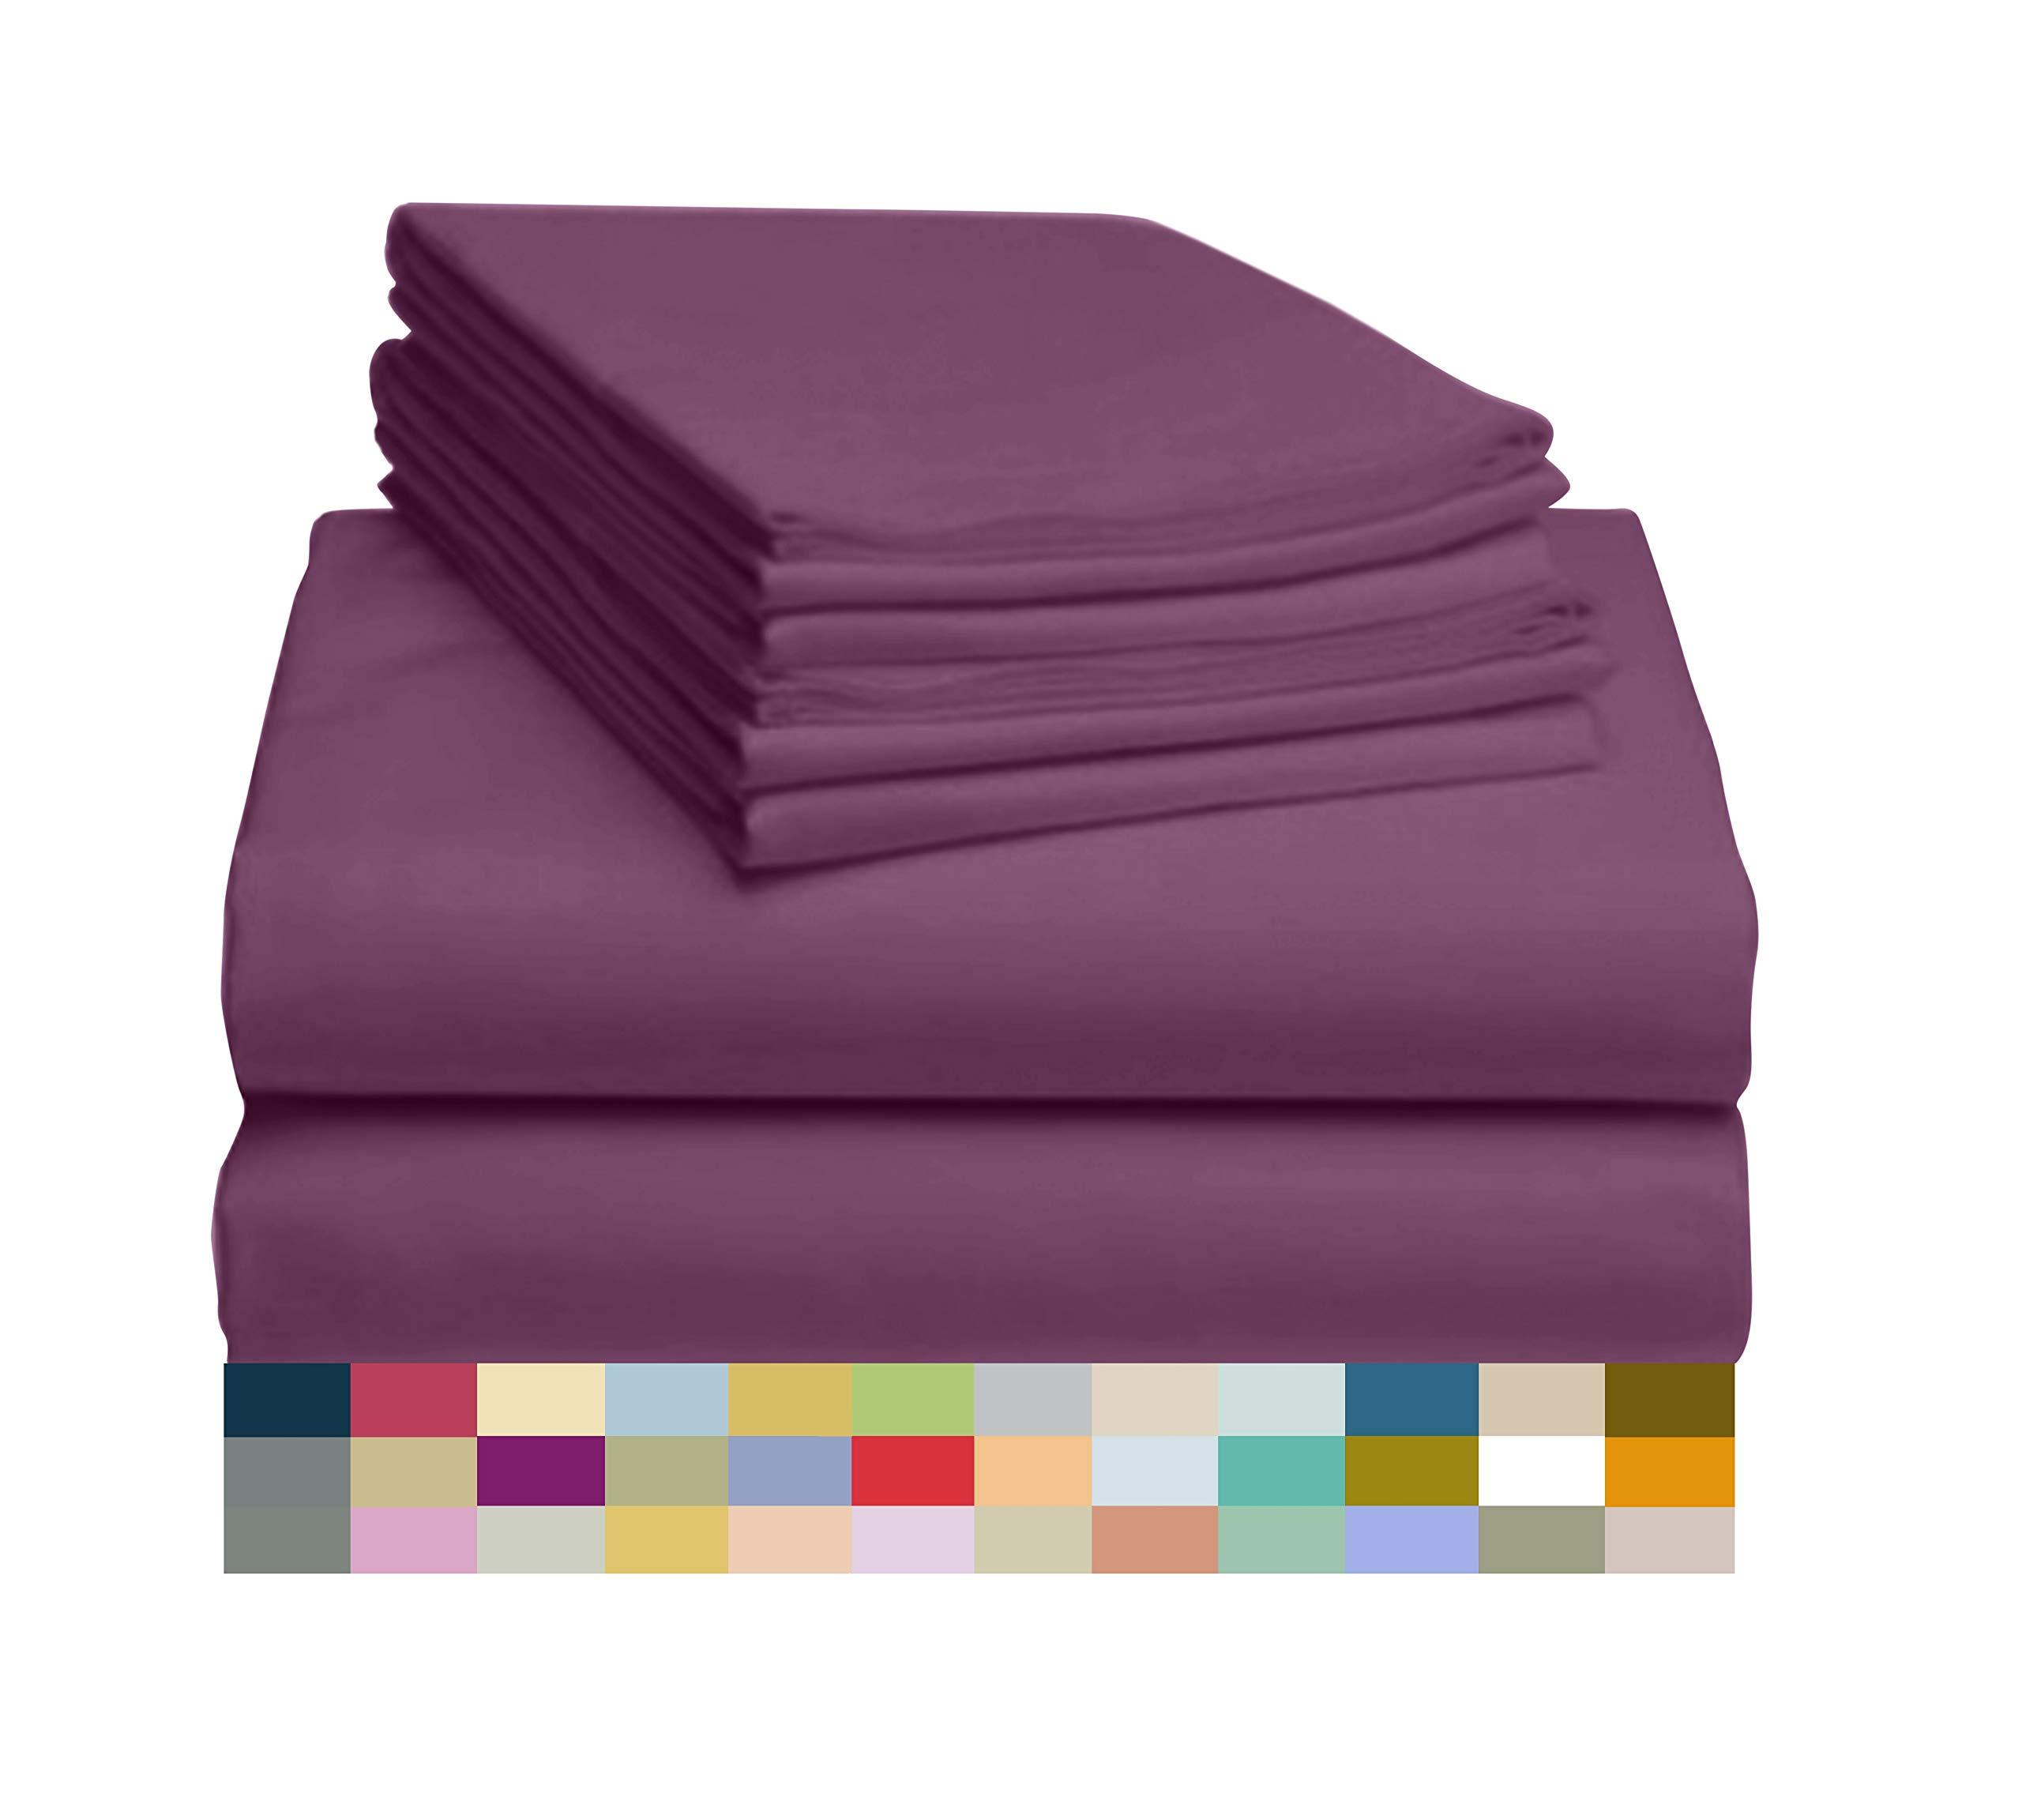 LuxClub 4 PC Sheet Set Bamboo Sheets Deep Pockets 18 Eco Friendly Wrinkle Free Sheets Hypoallergenic Anti-Bacteria Machine Washable Hotel Bedding Silky Soft - Eggplant Twin